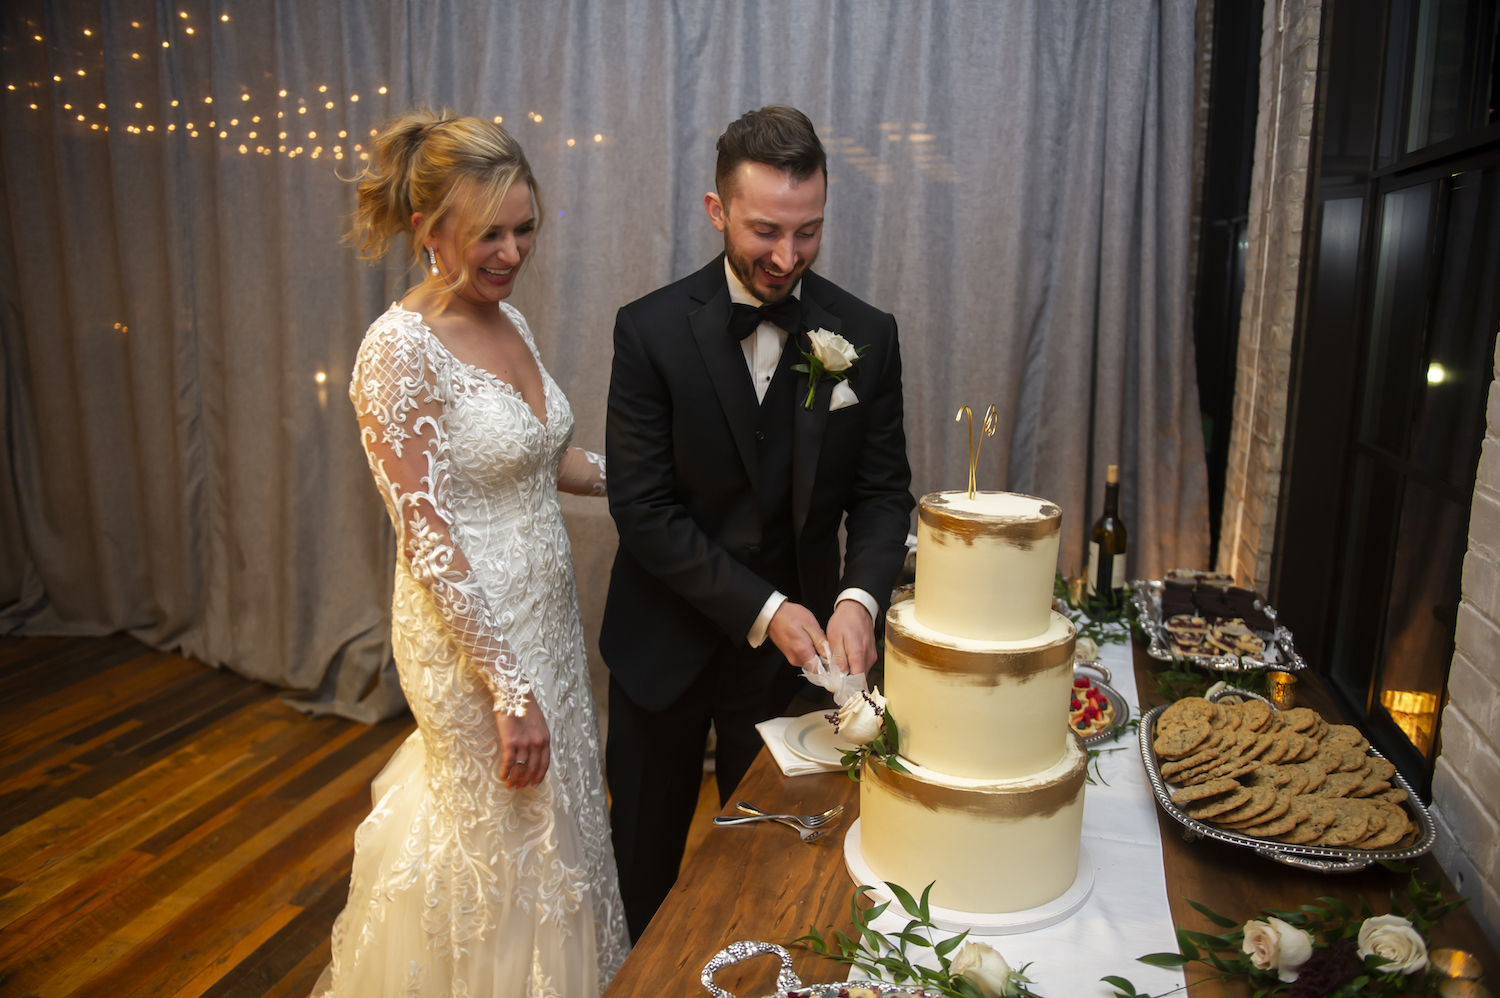 Bride and groom cutting cake smiling